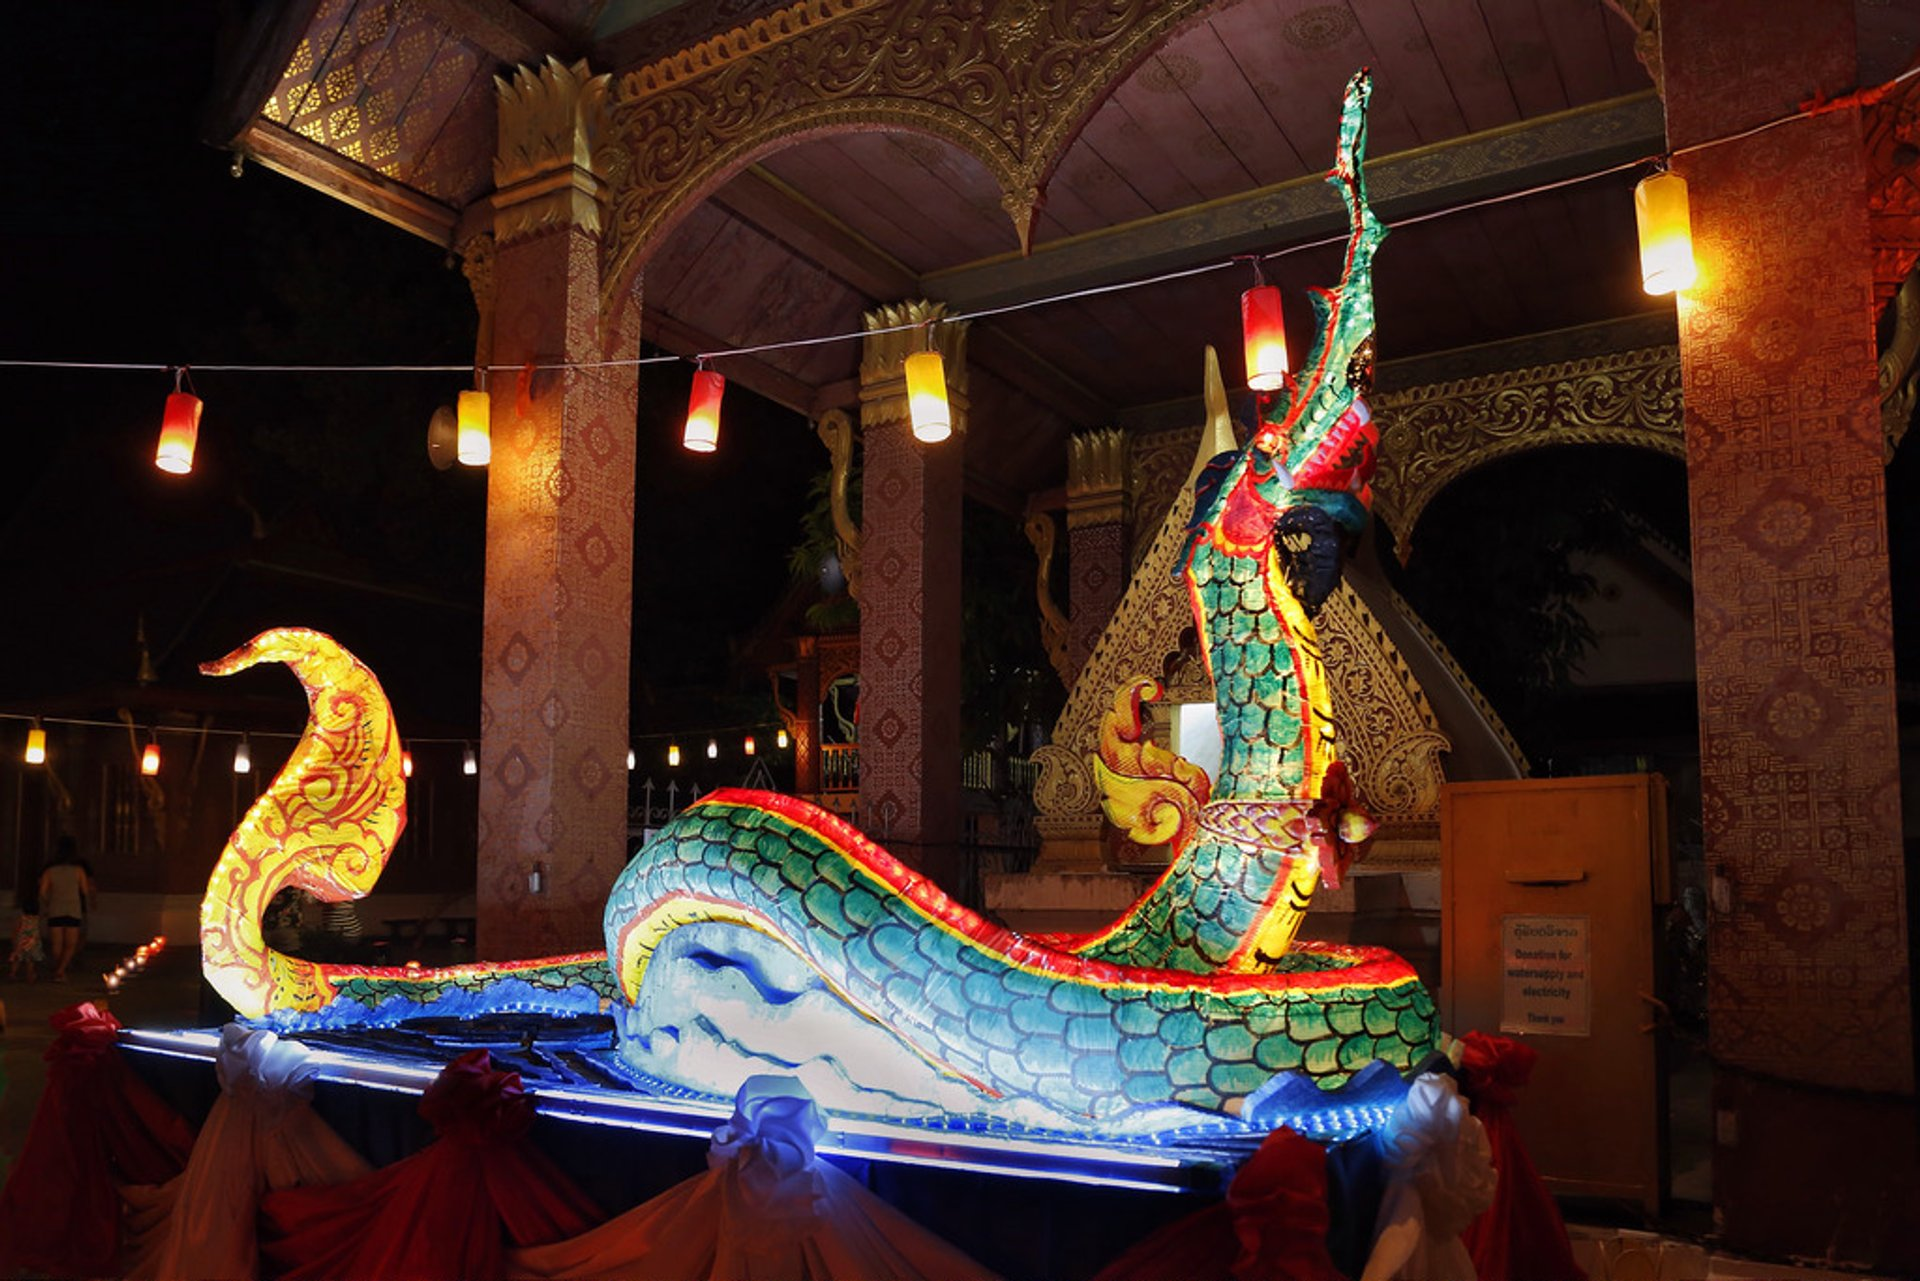 Decorations for Boun Awk Phansa in Luang Prabang 2020